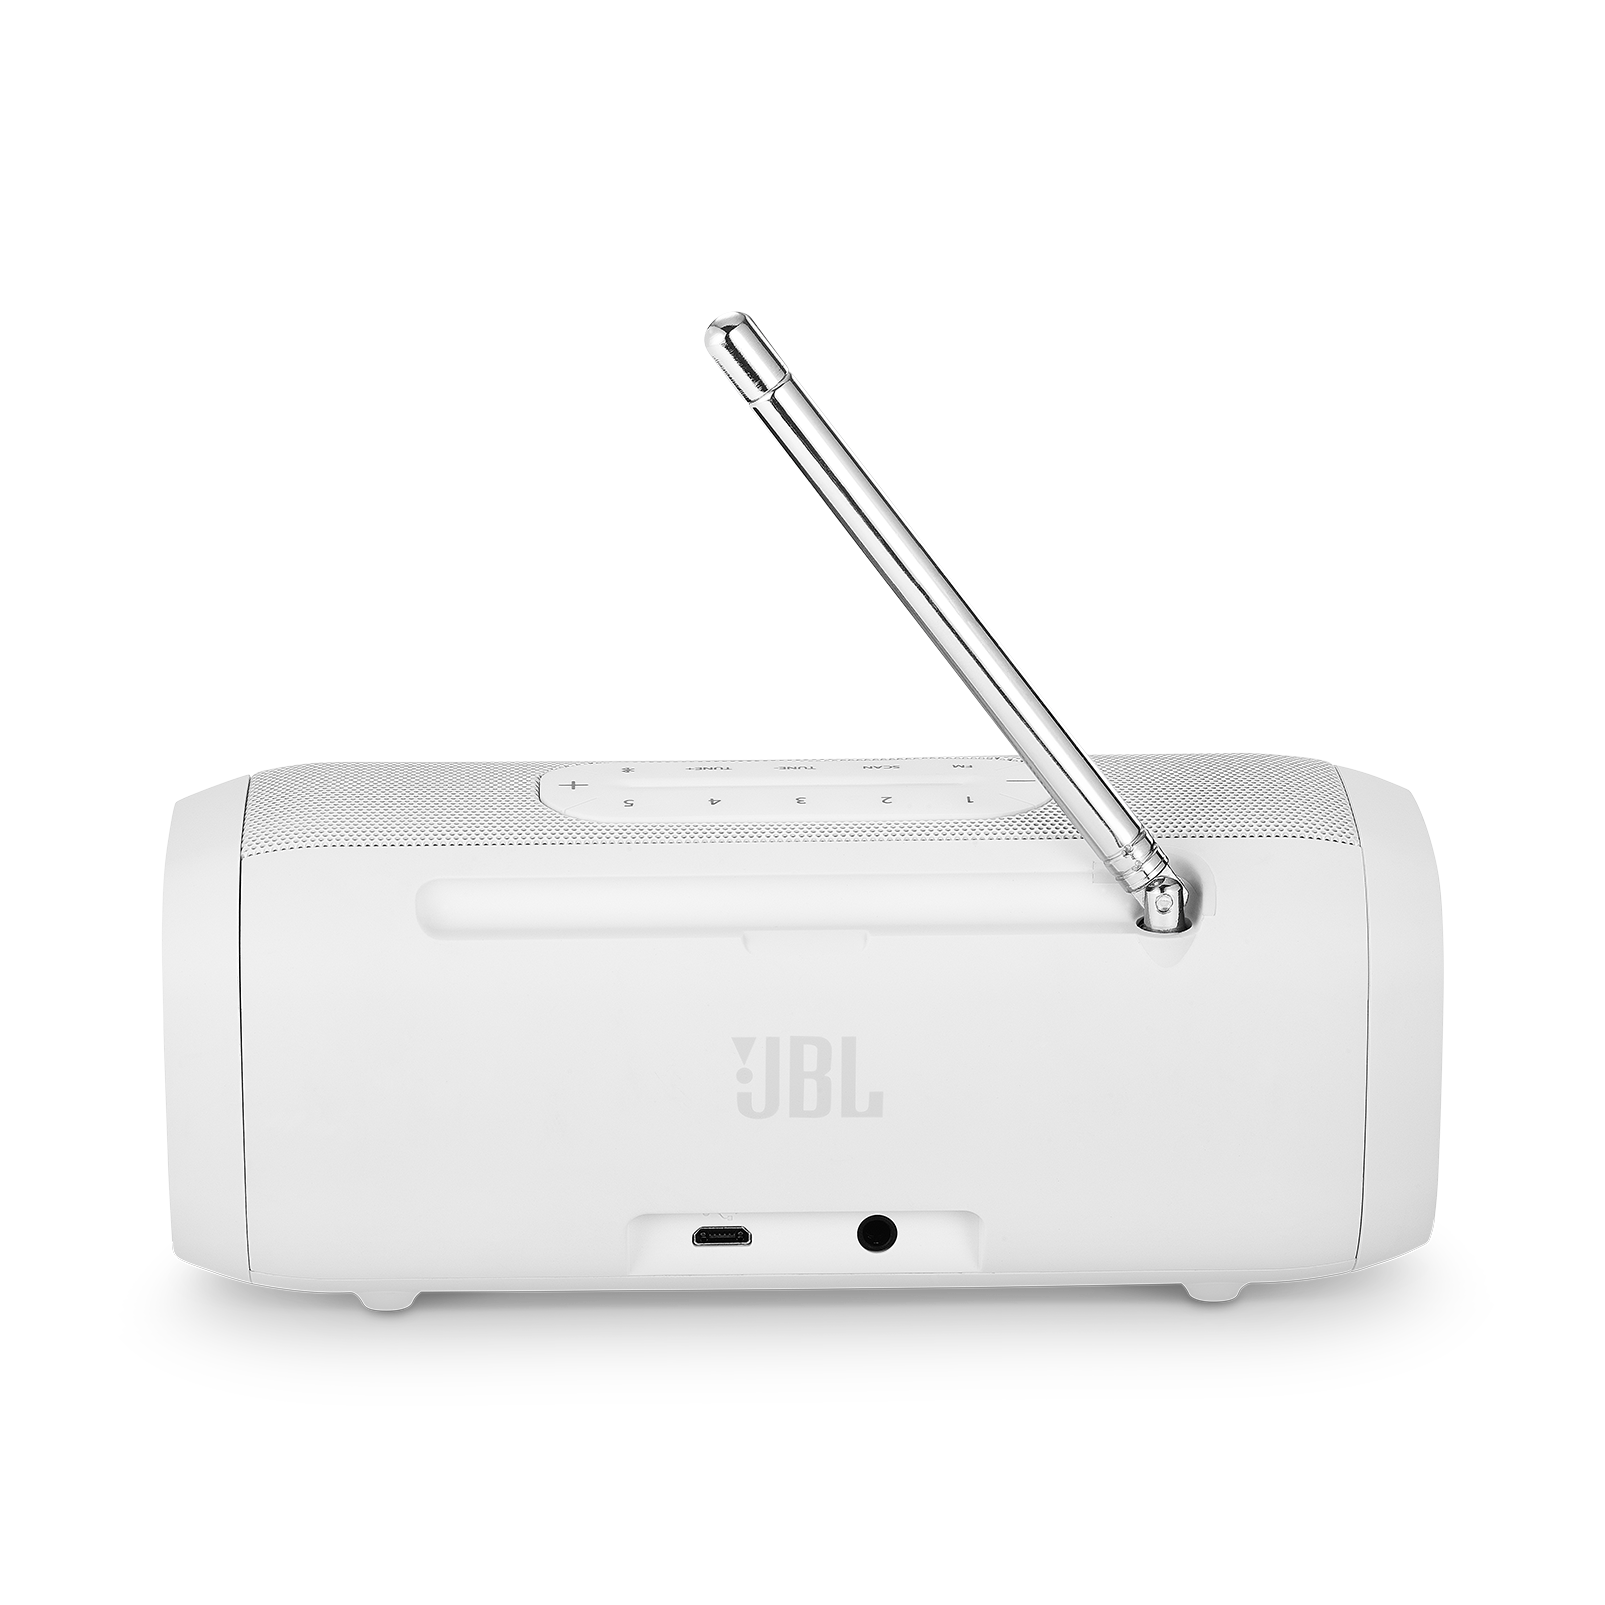 JBL Tuner FM - White - Portable Bluetooth Speaker with FM radio - Back